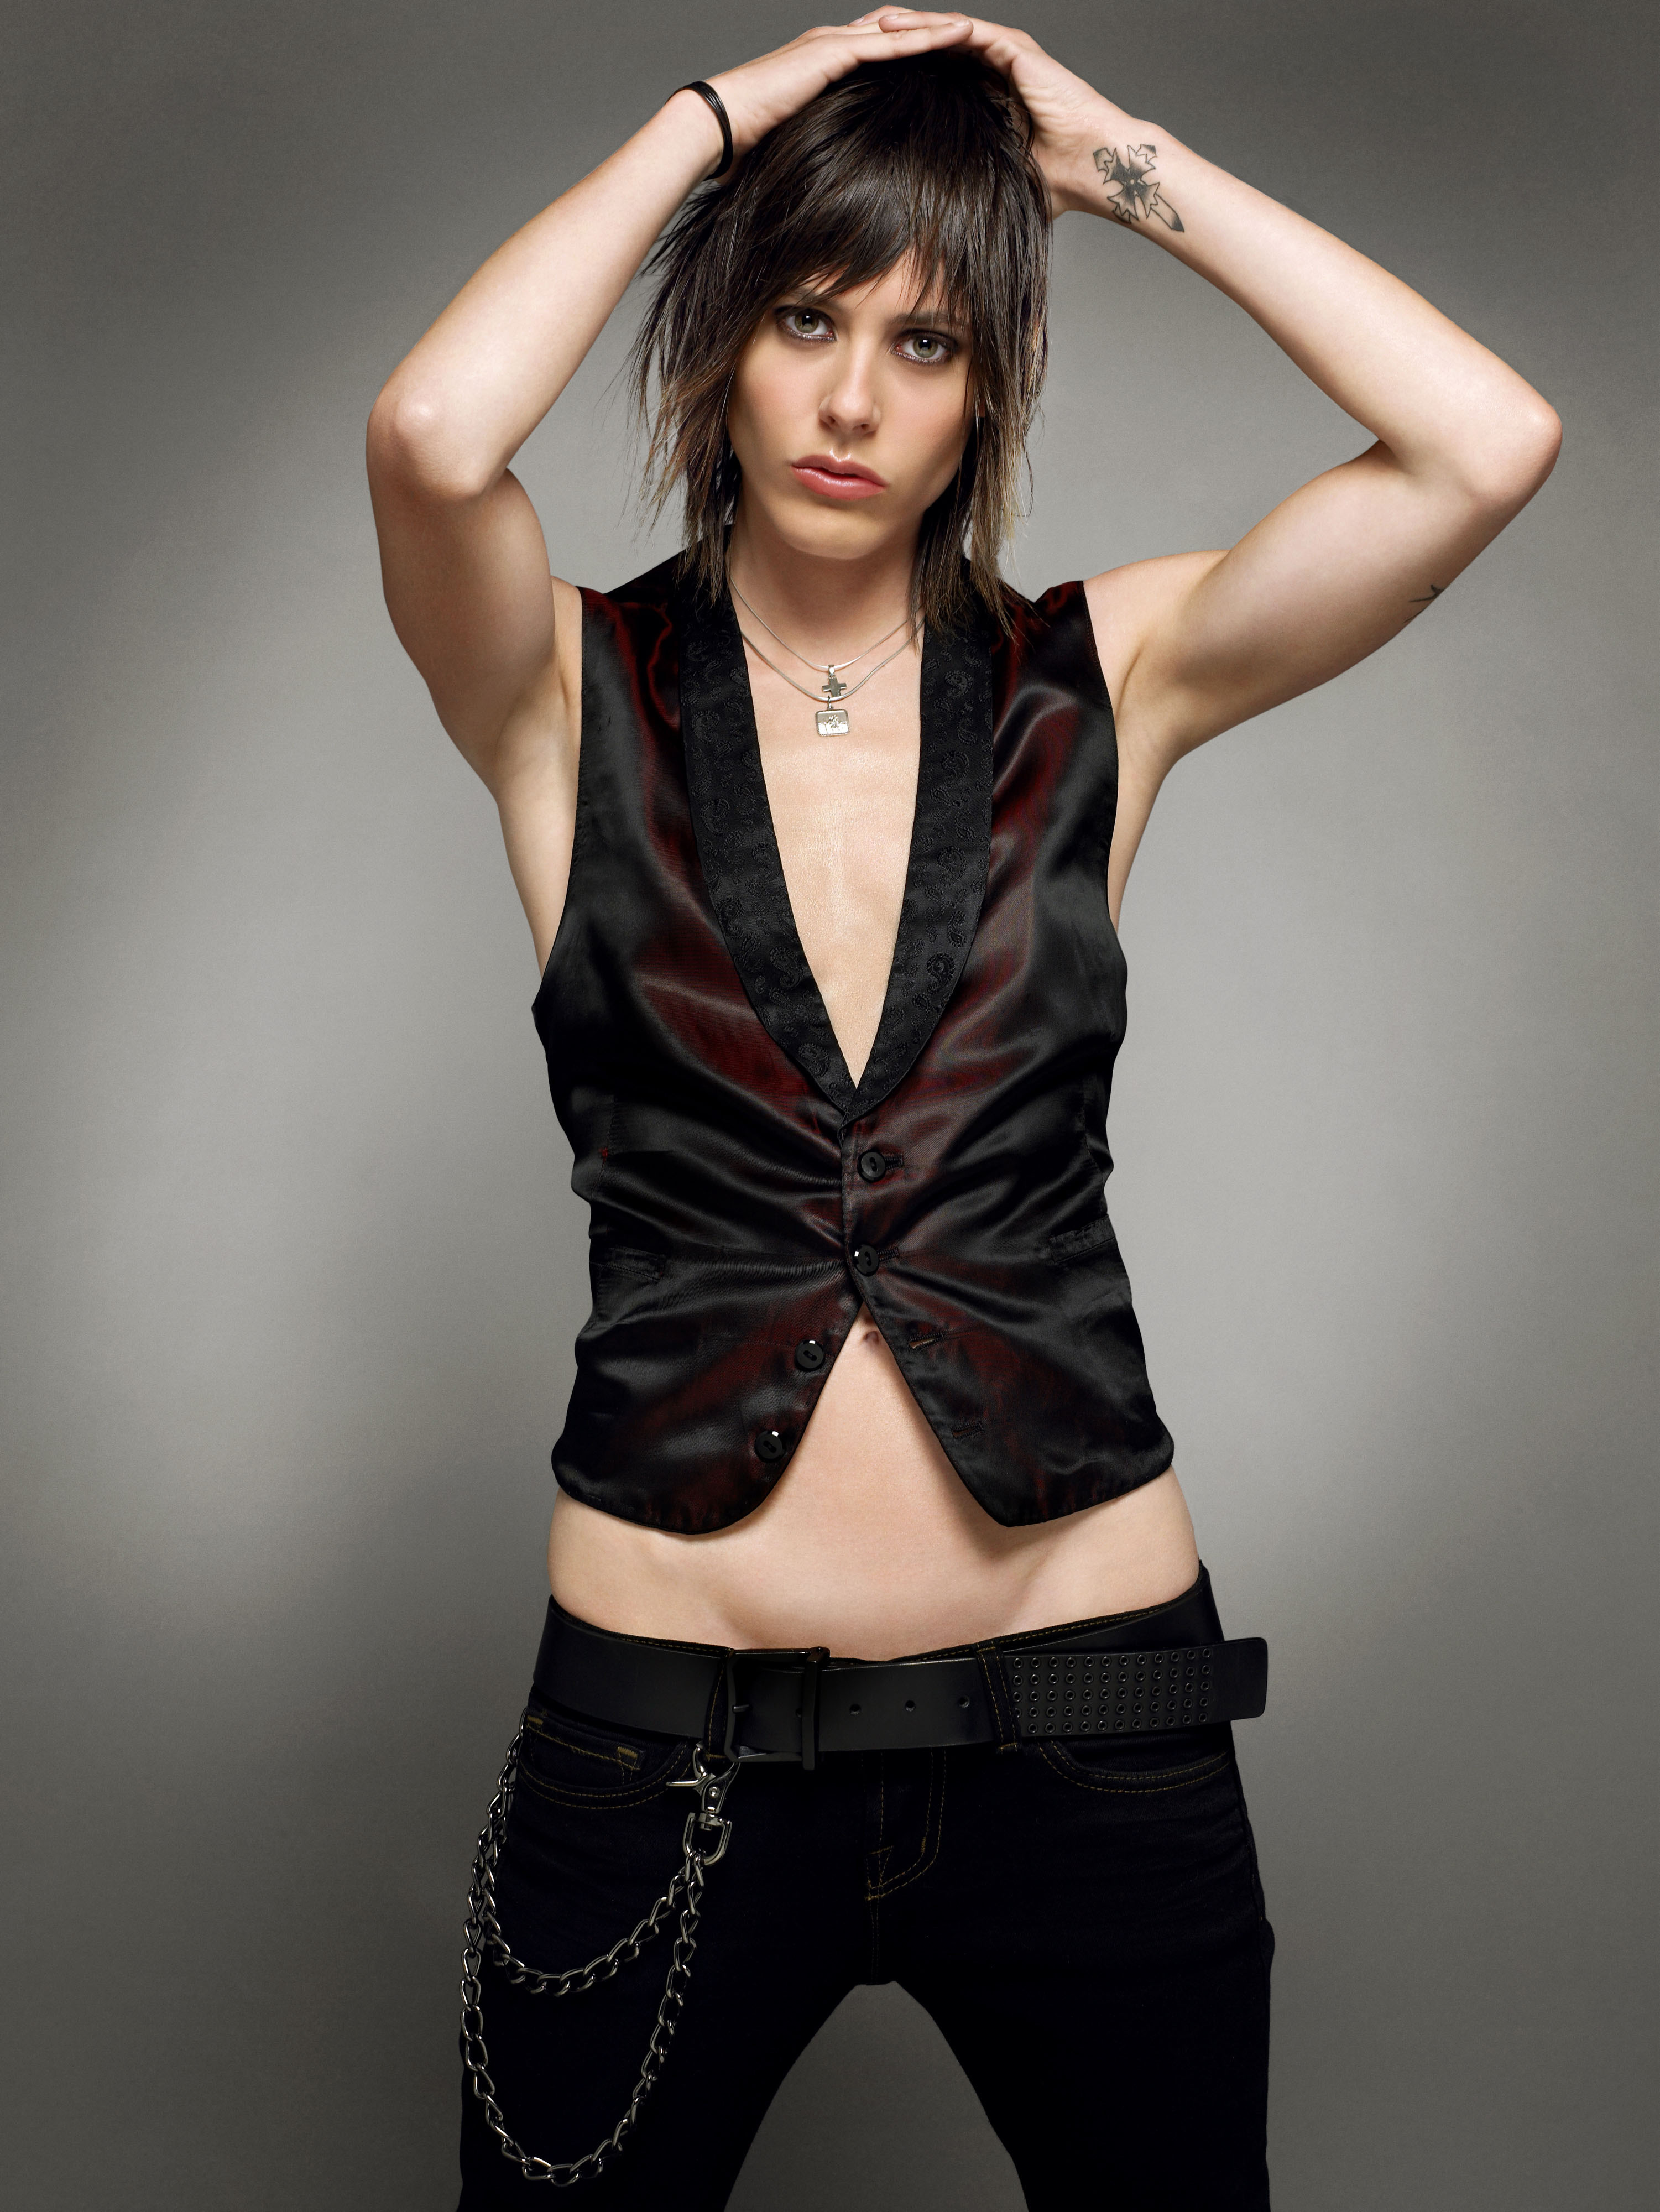 Katherine Moennig photo, pics, wallpaper - photo #